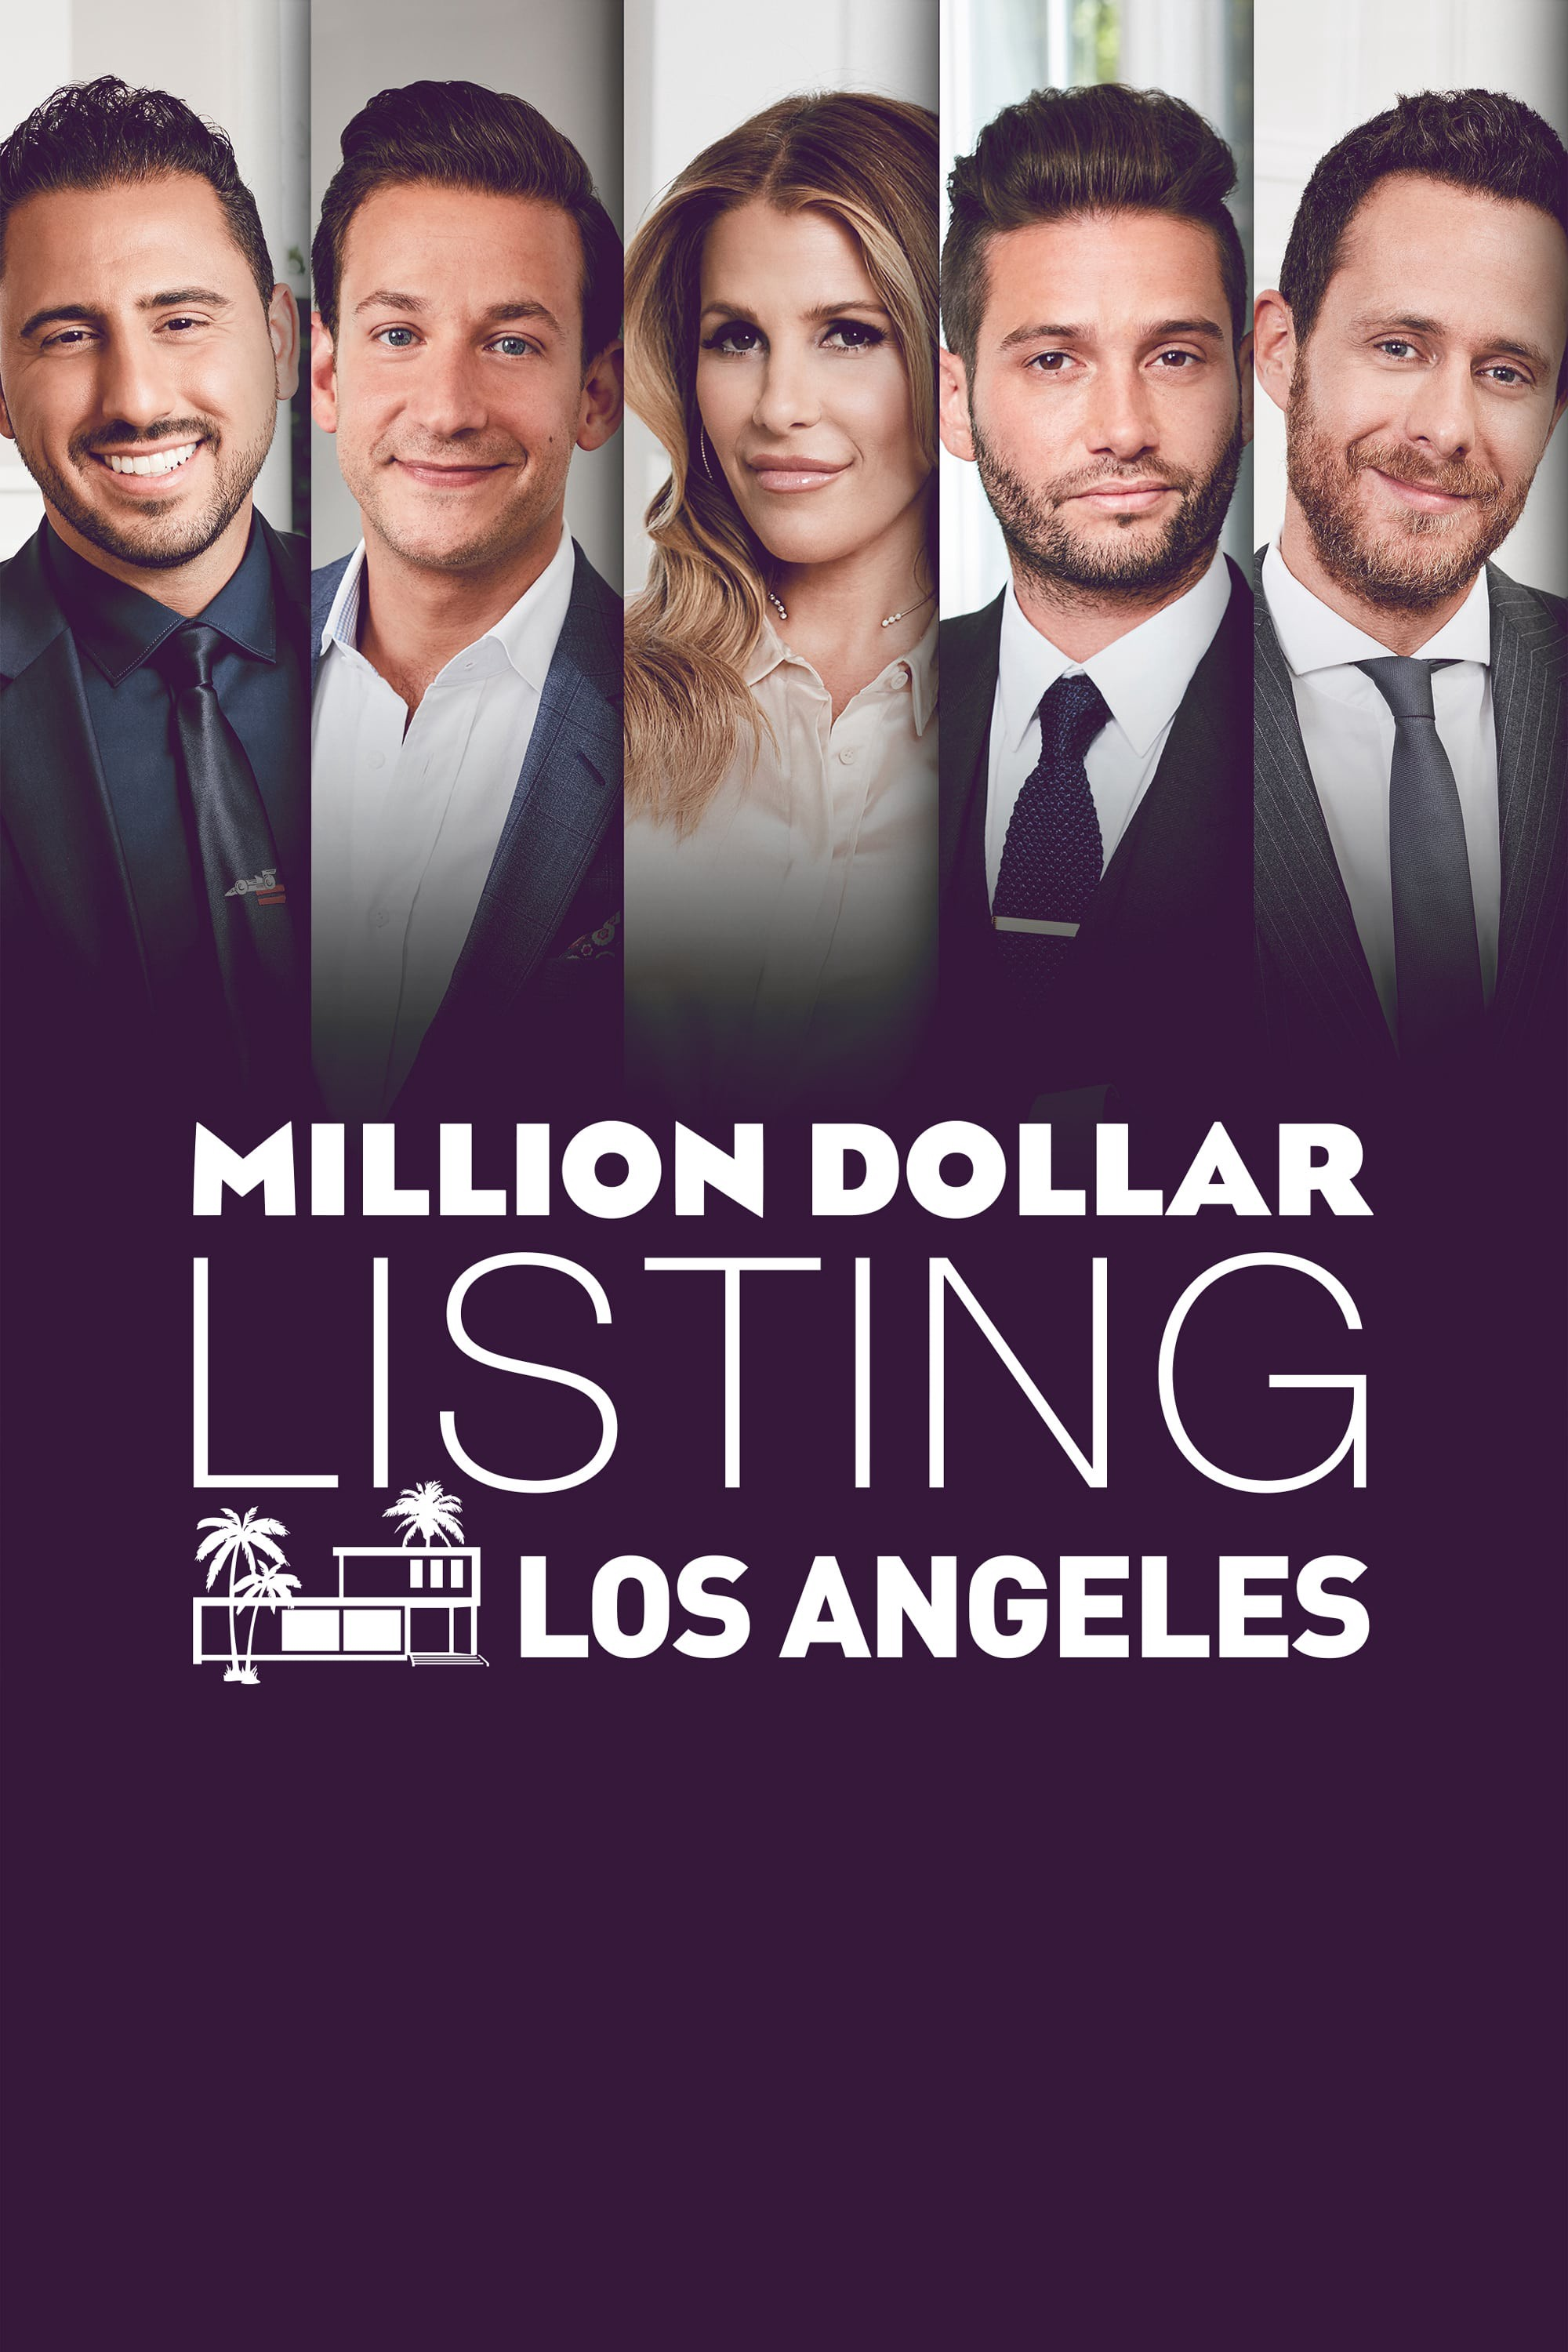 Million Dollar Listing - Season 12 Episode 8 - 24 Hours Or Else